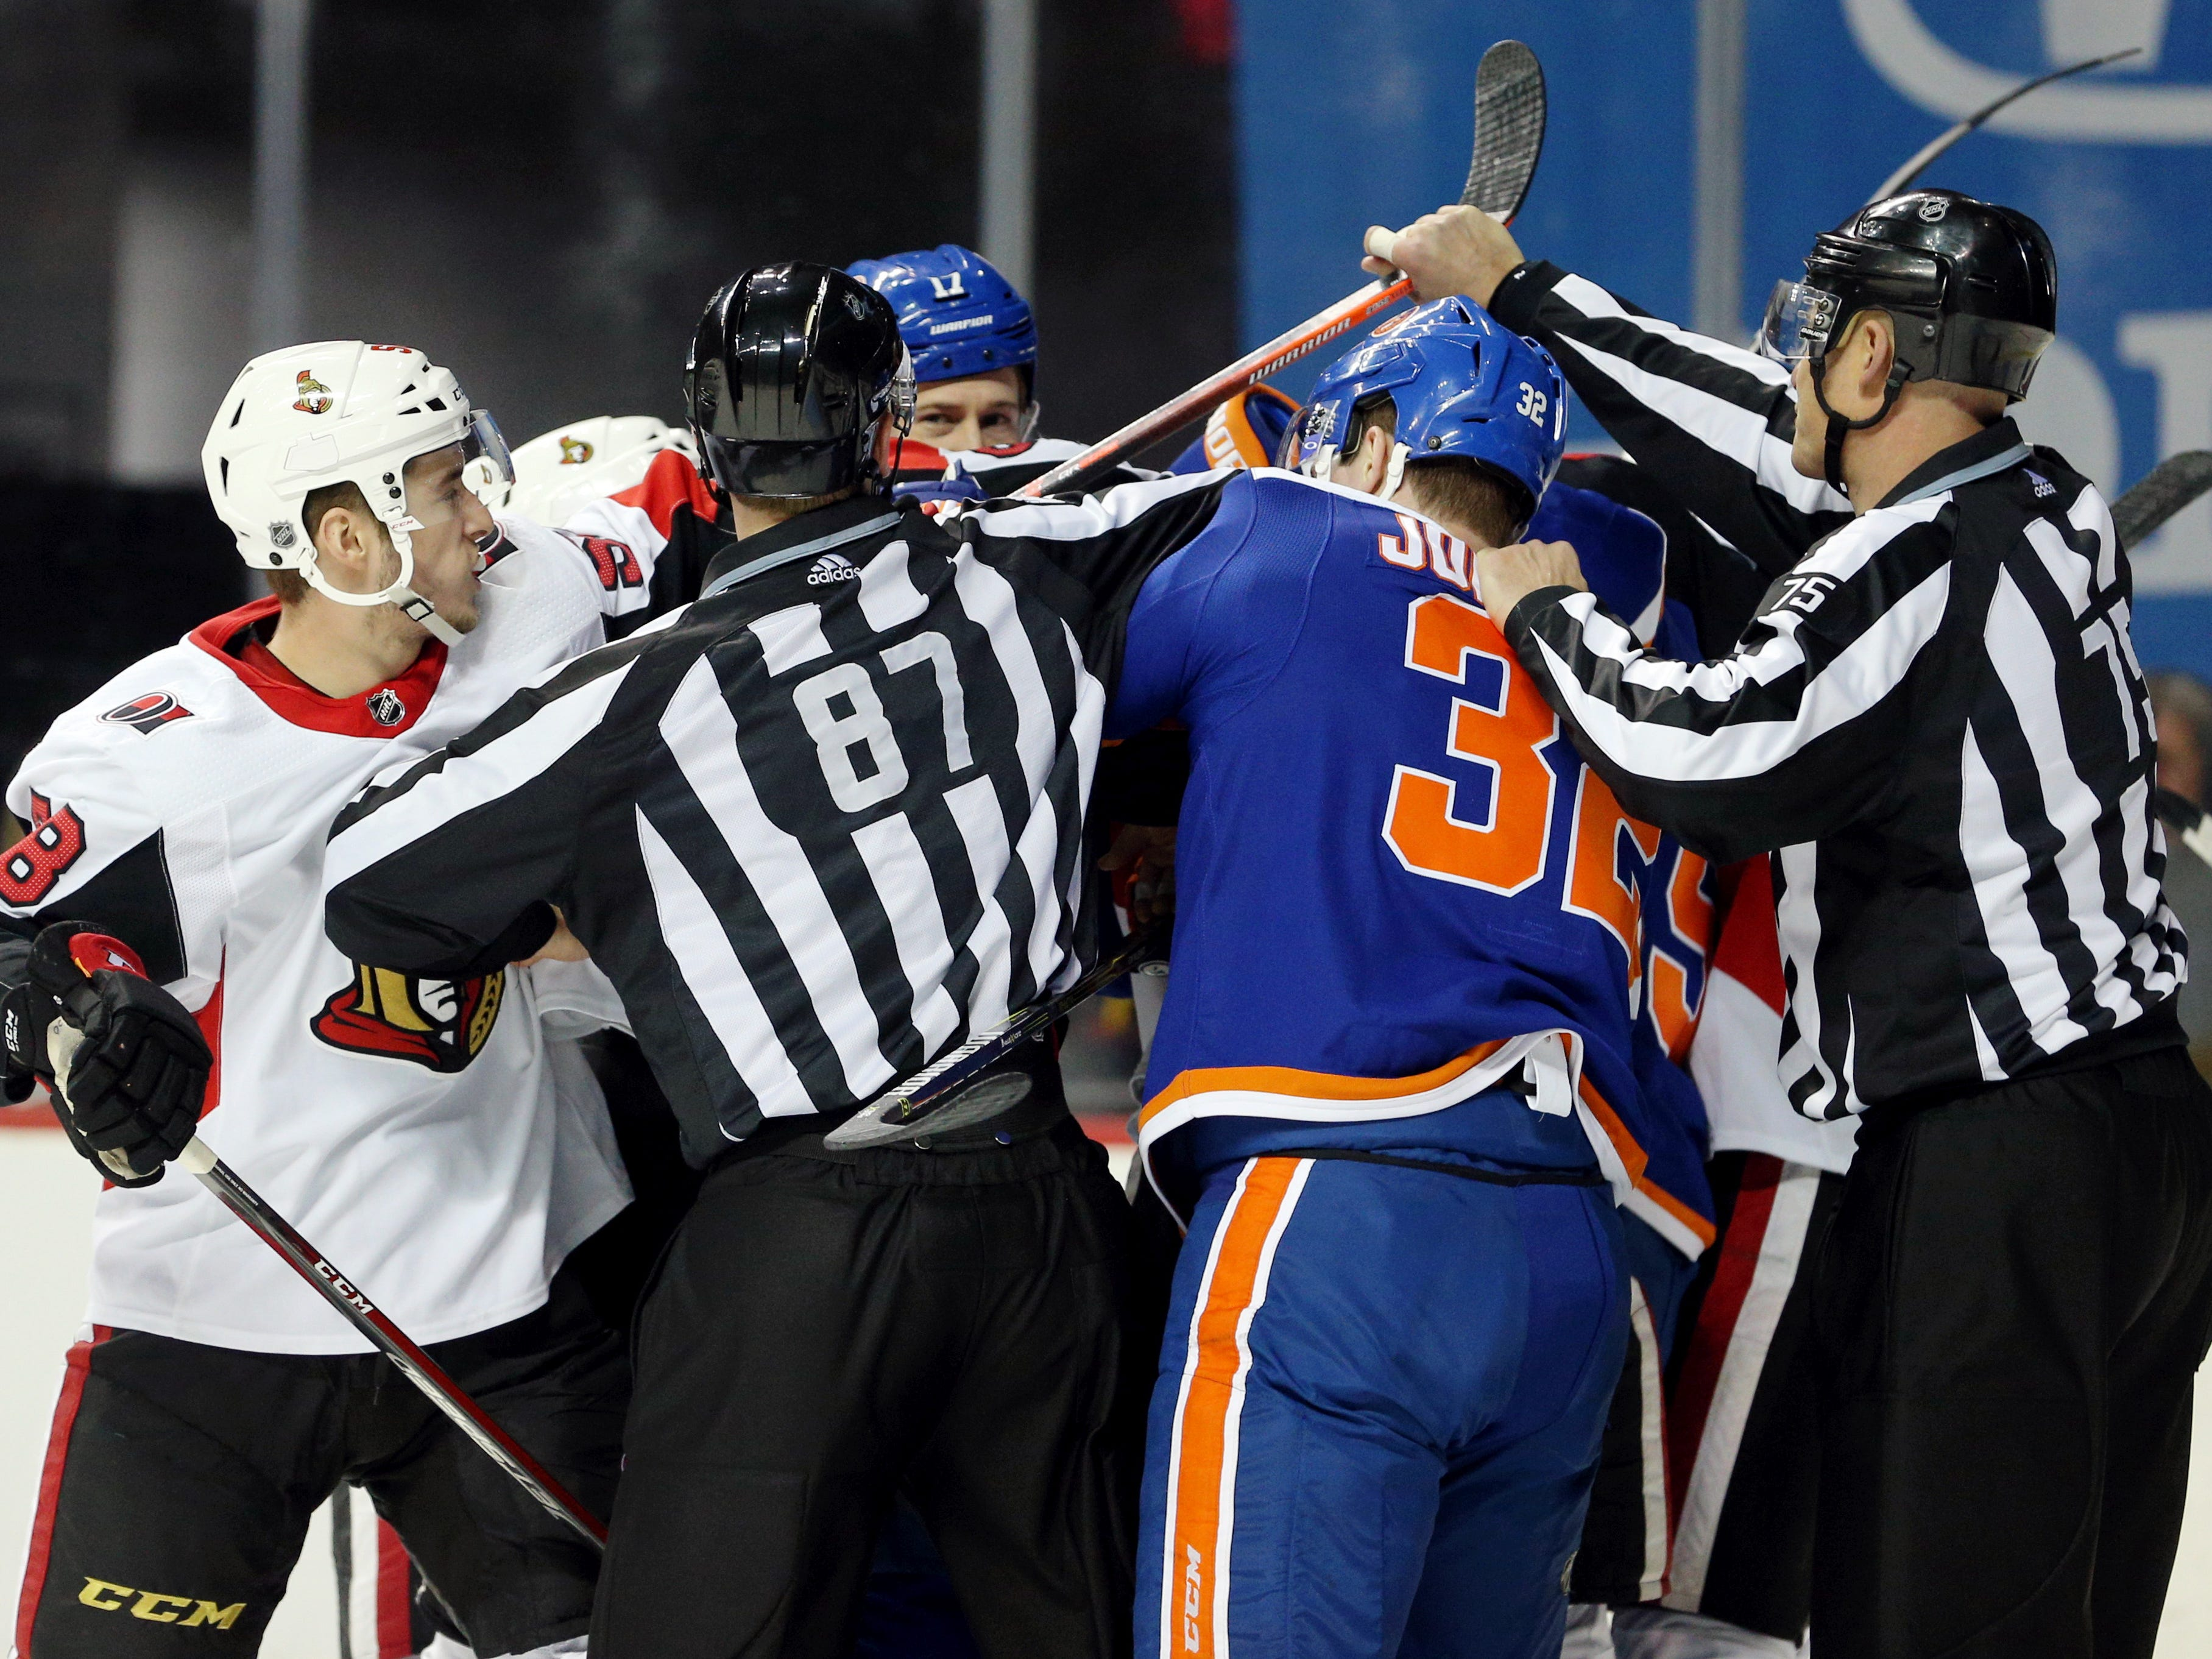 Dec. 28: The Ottawa Senators and New York Islanders mix it up in the second period. The teams also had three fights in the final 30 seconds.